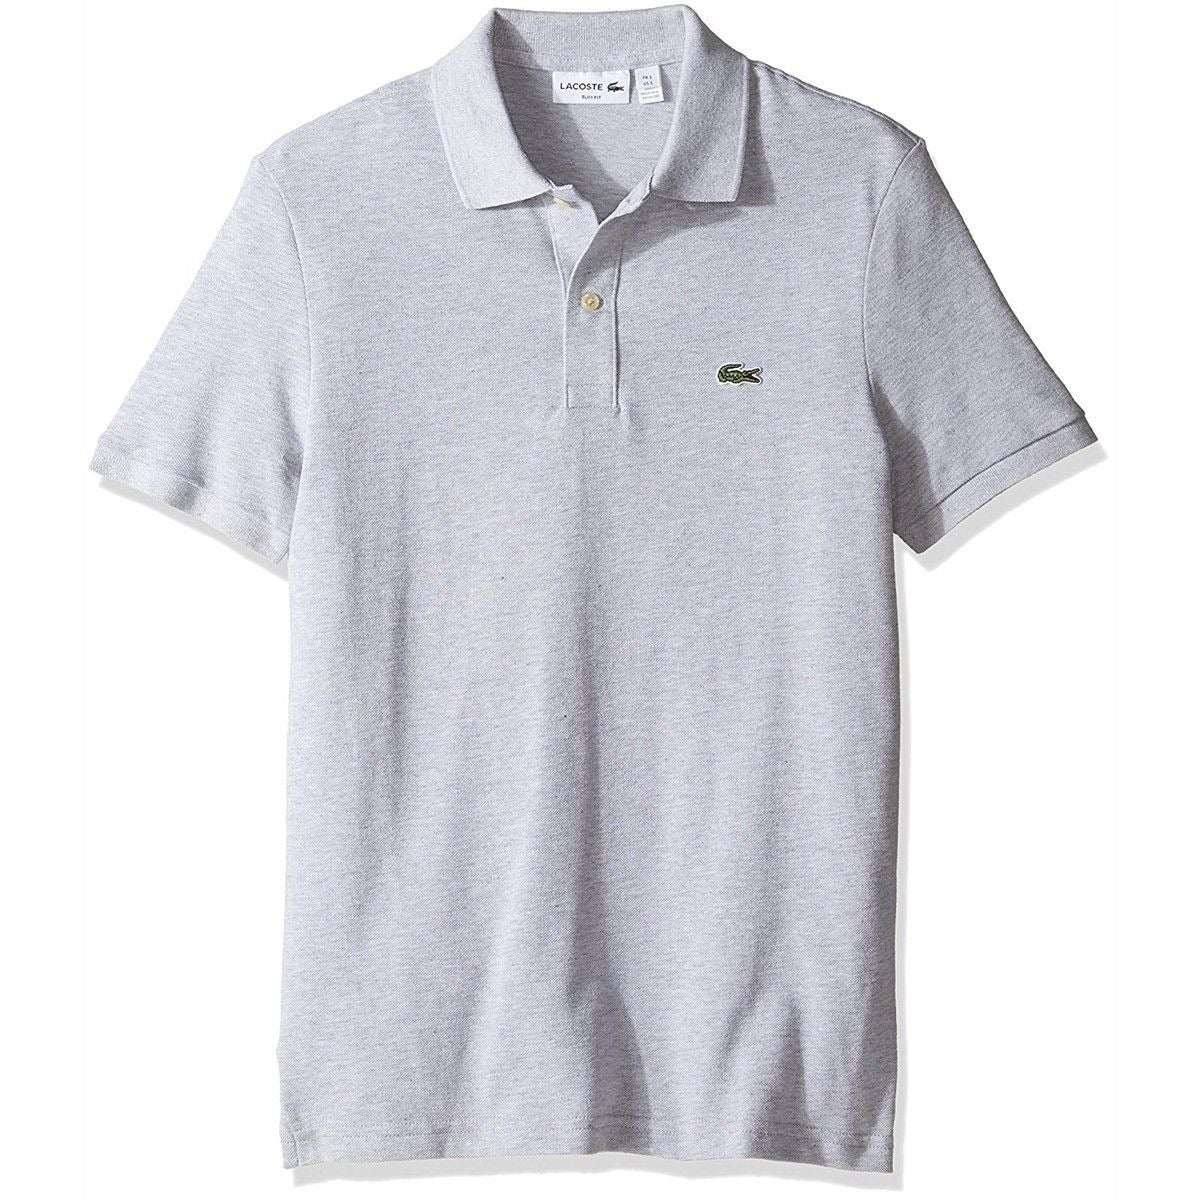 Shop Lacoste New Heathered Gray Mens Us Size Xl Fr 6 Classic Fit